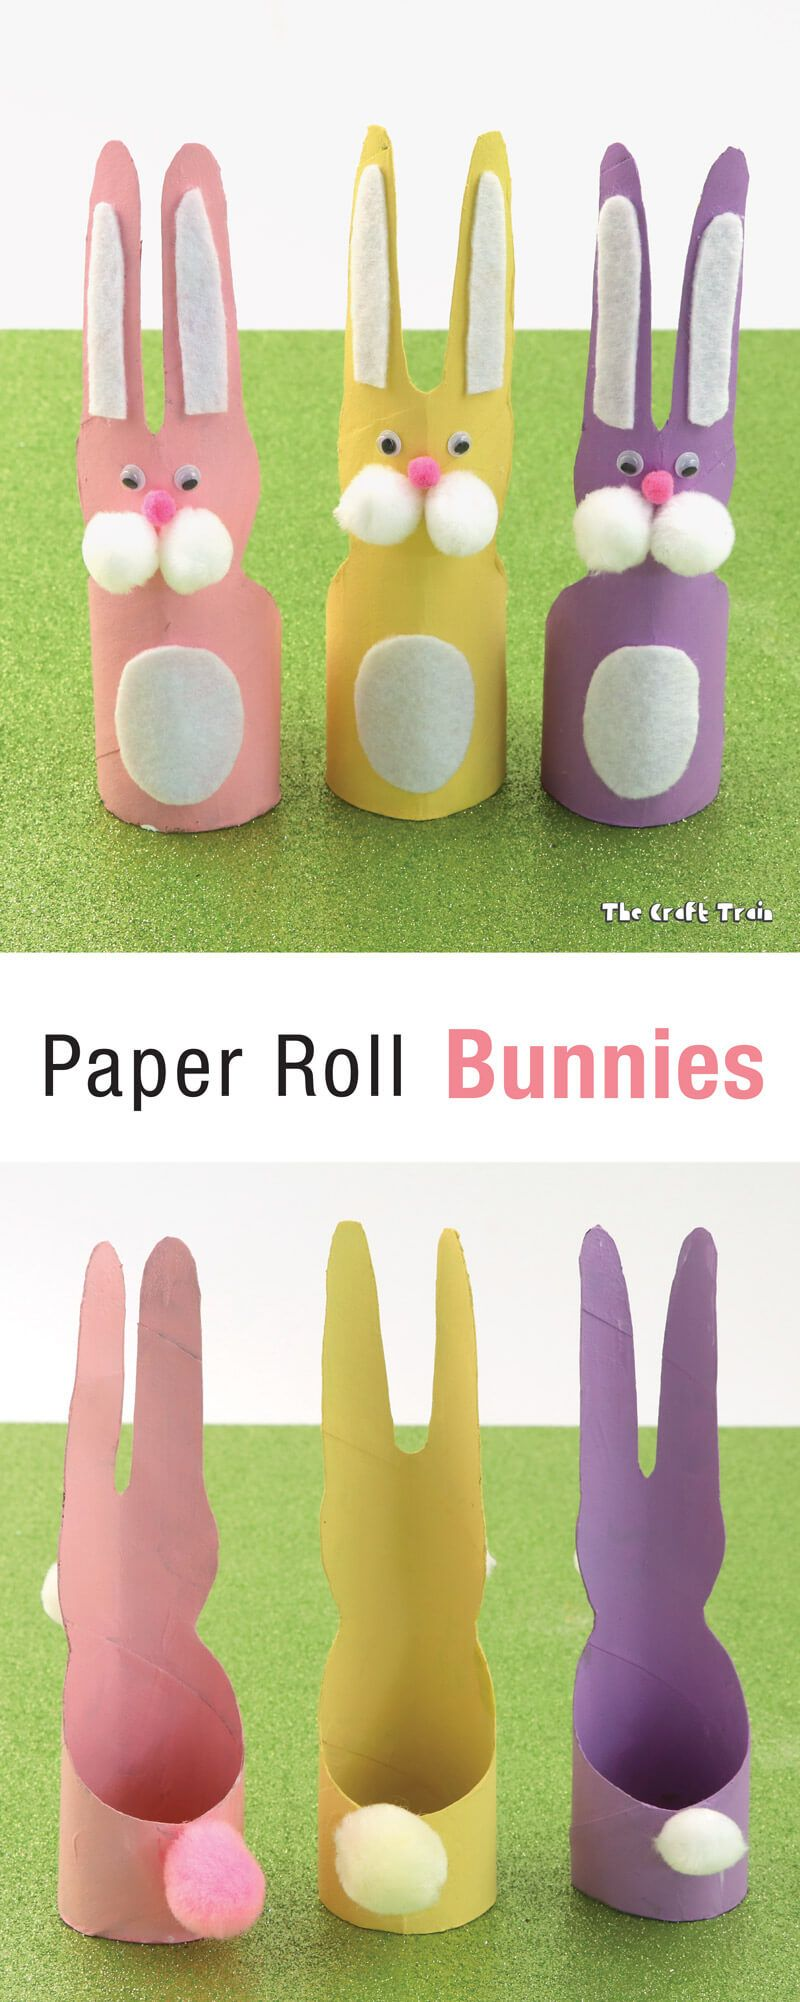 Easter bunny craft idea #recycledcrafts